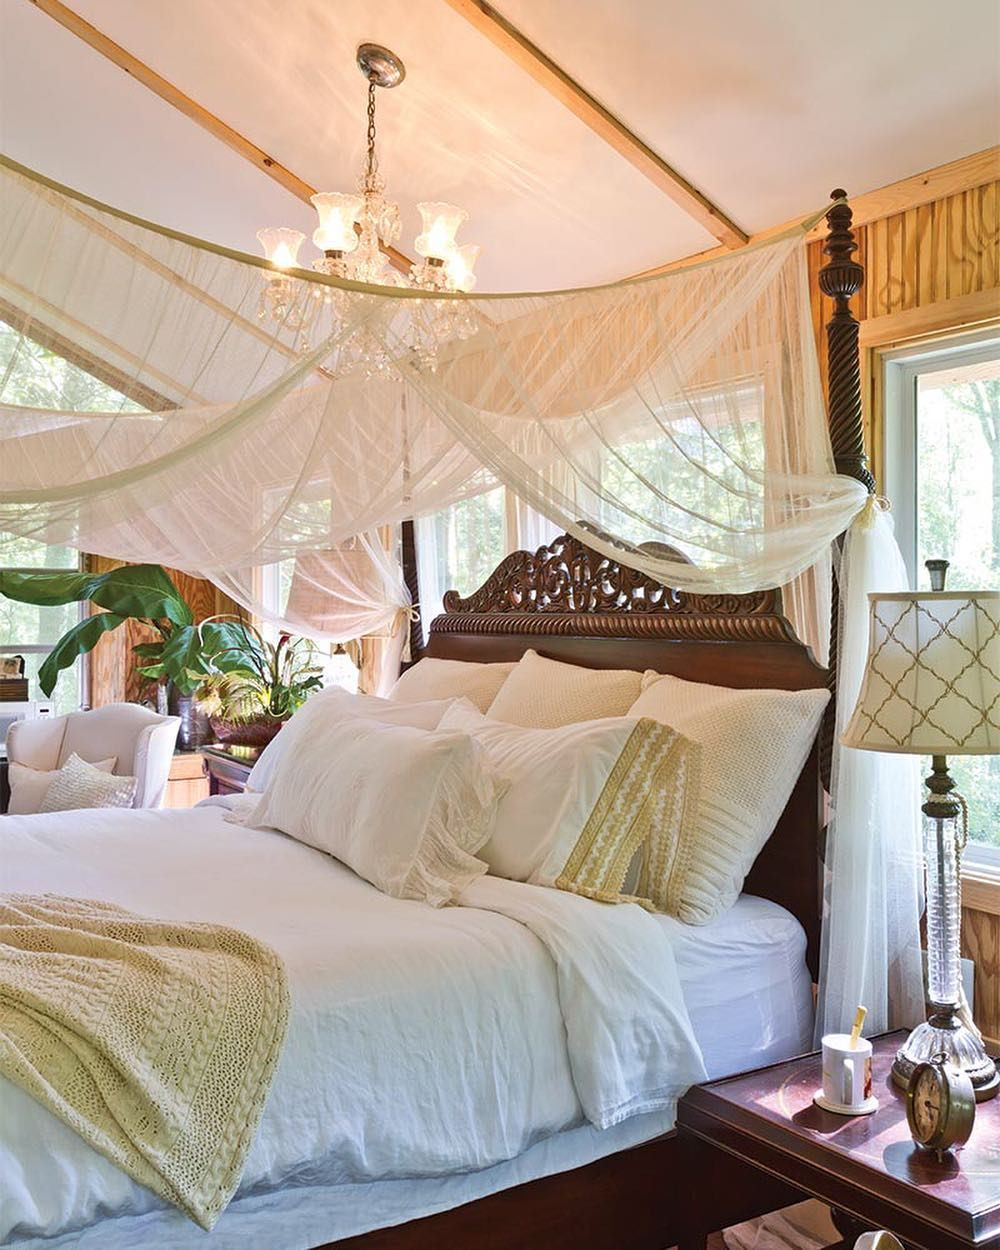 Pin By Christine Wong On Dream Home Sweet Home Stylish Bedroom Beautiful Bedrooms Tropical Bedrooms